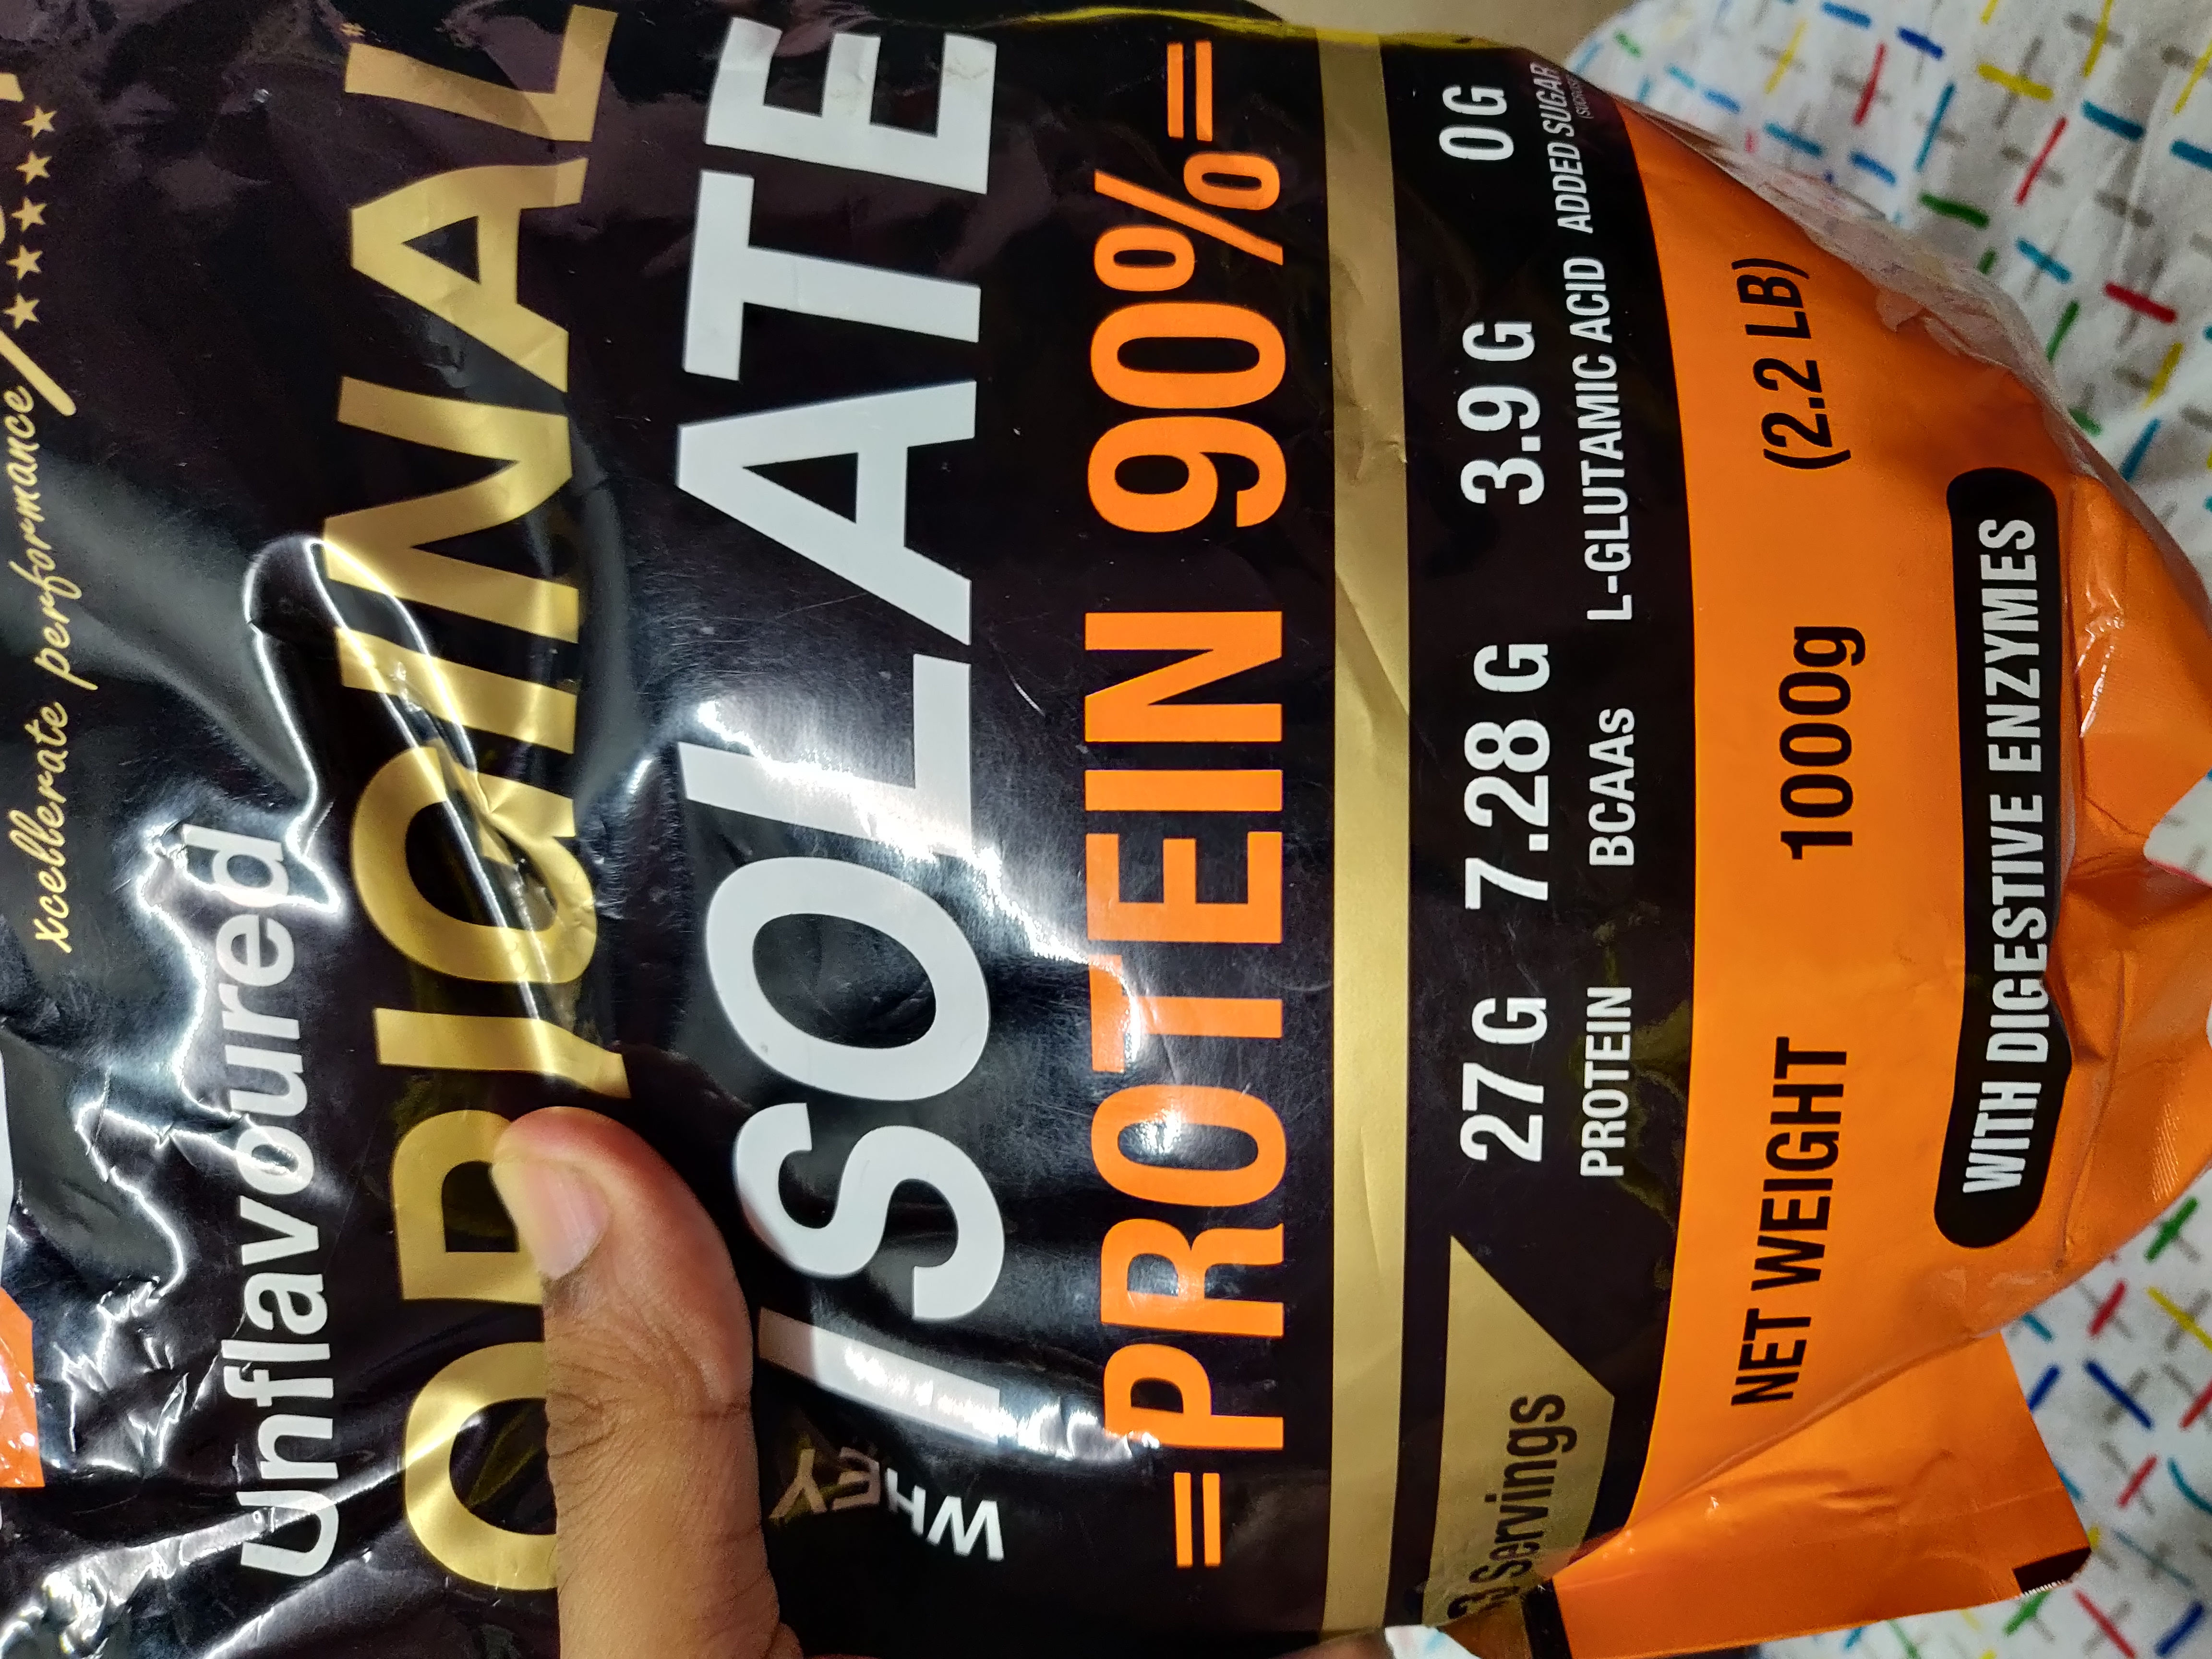 MuscleXP Original Whey Isolate Protein 90% With Digestive Enzyme-A Great protein-By hkmurali-1